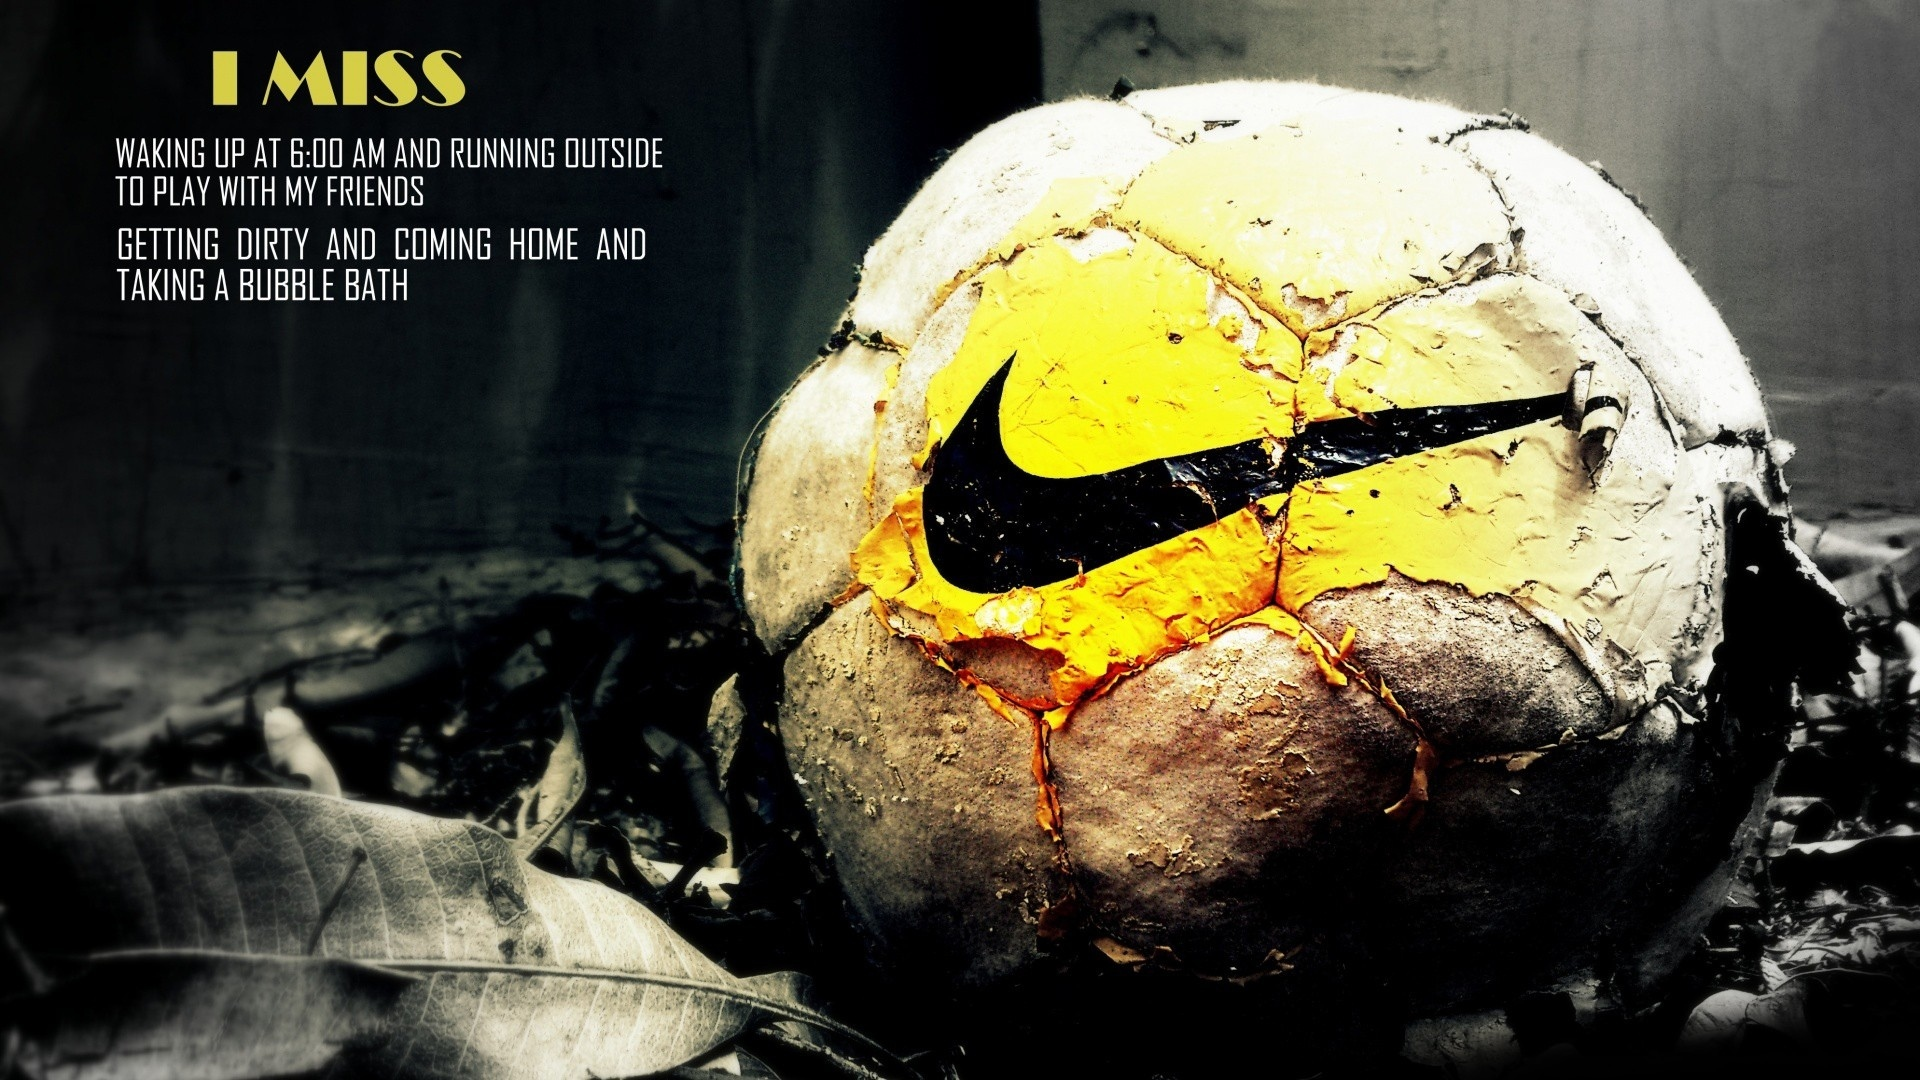 nike ball wallpapers55com   Best Wallpapers for PCs Laptops 1920x1080